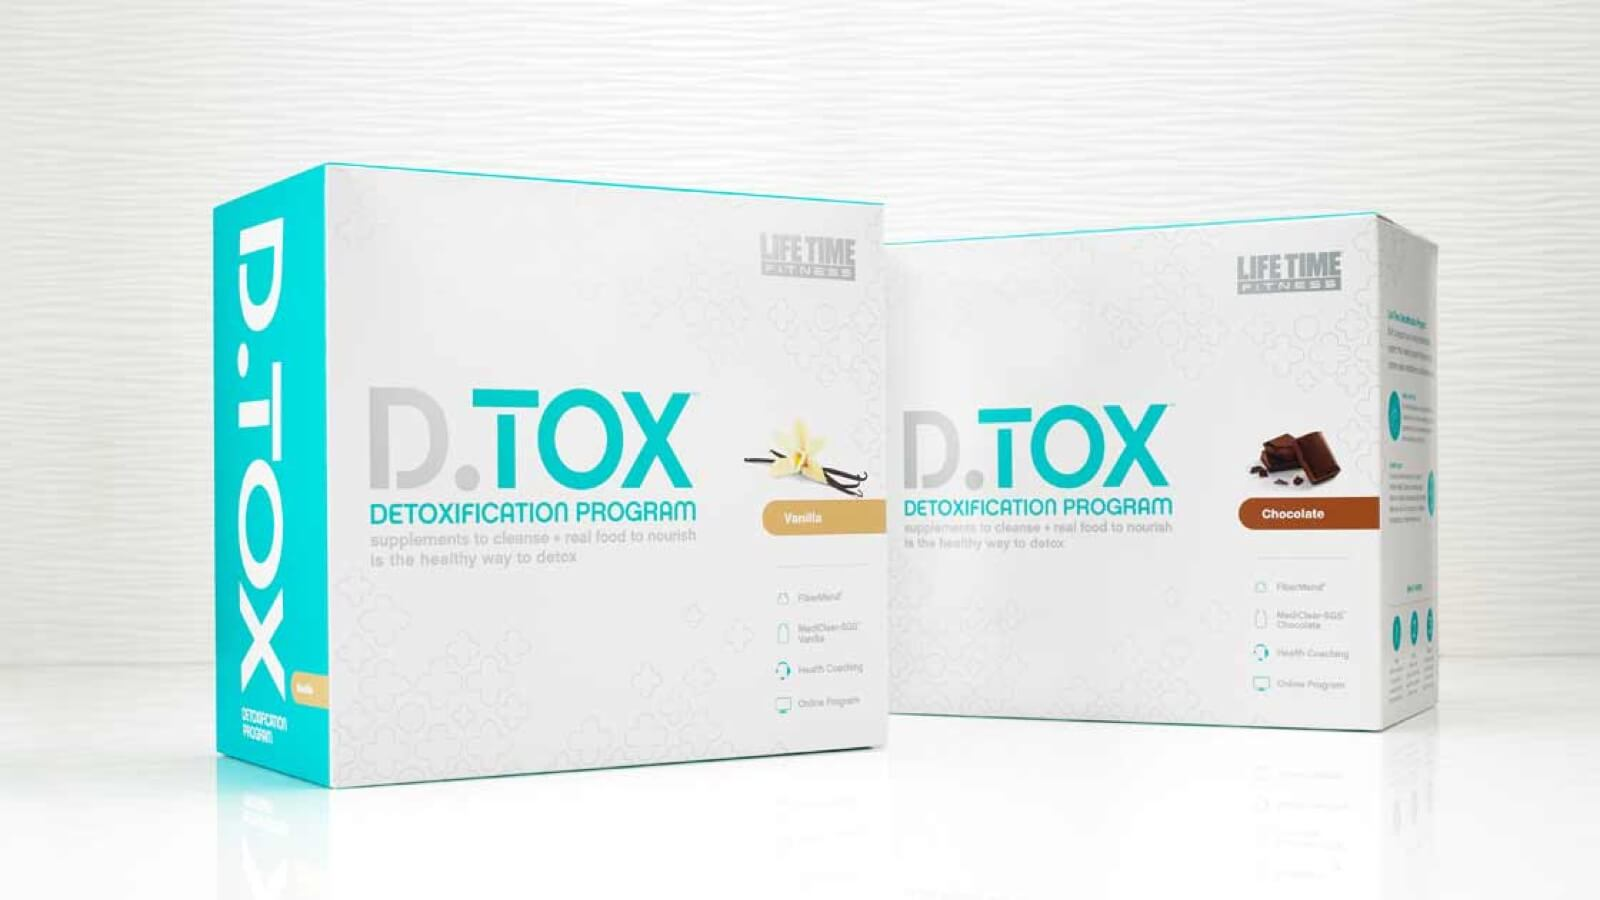 Boxes for vanilla- and chocolate-flavored D.TOX products